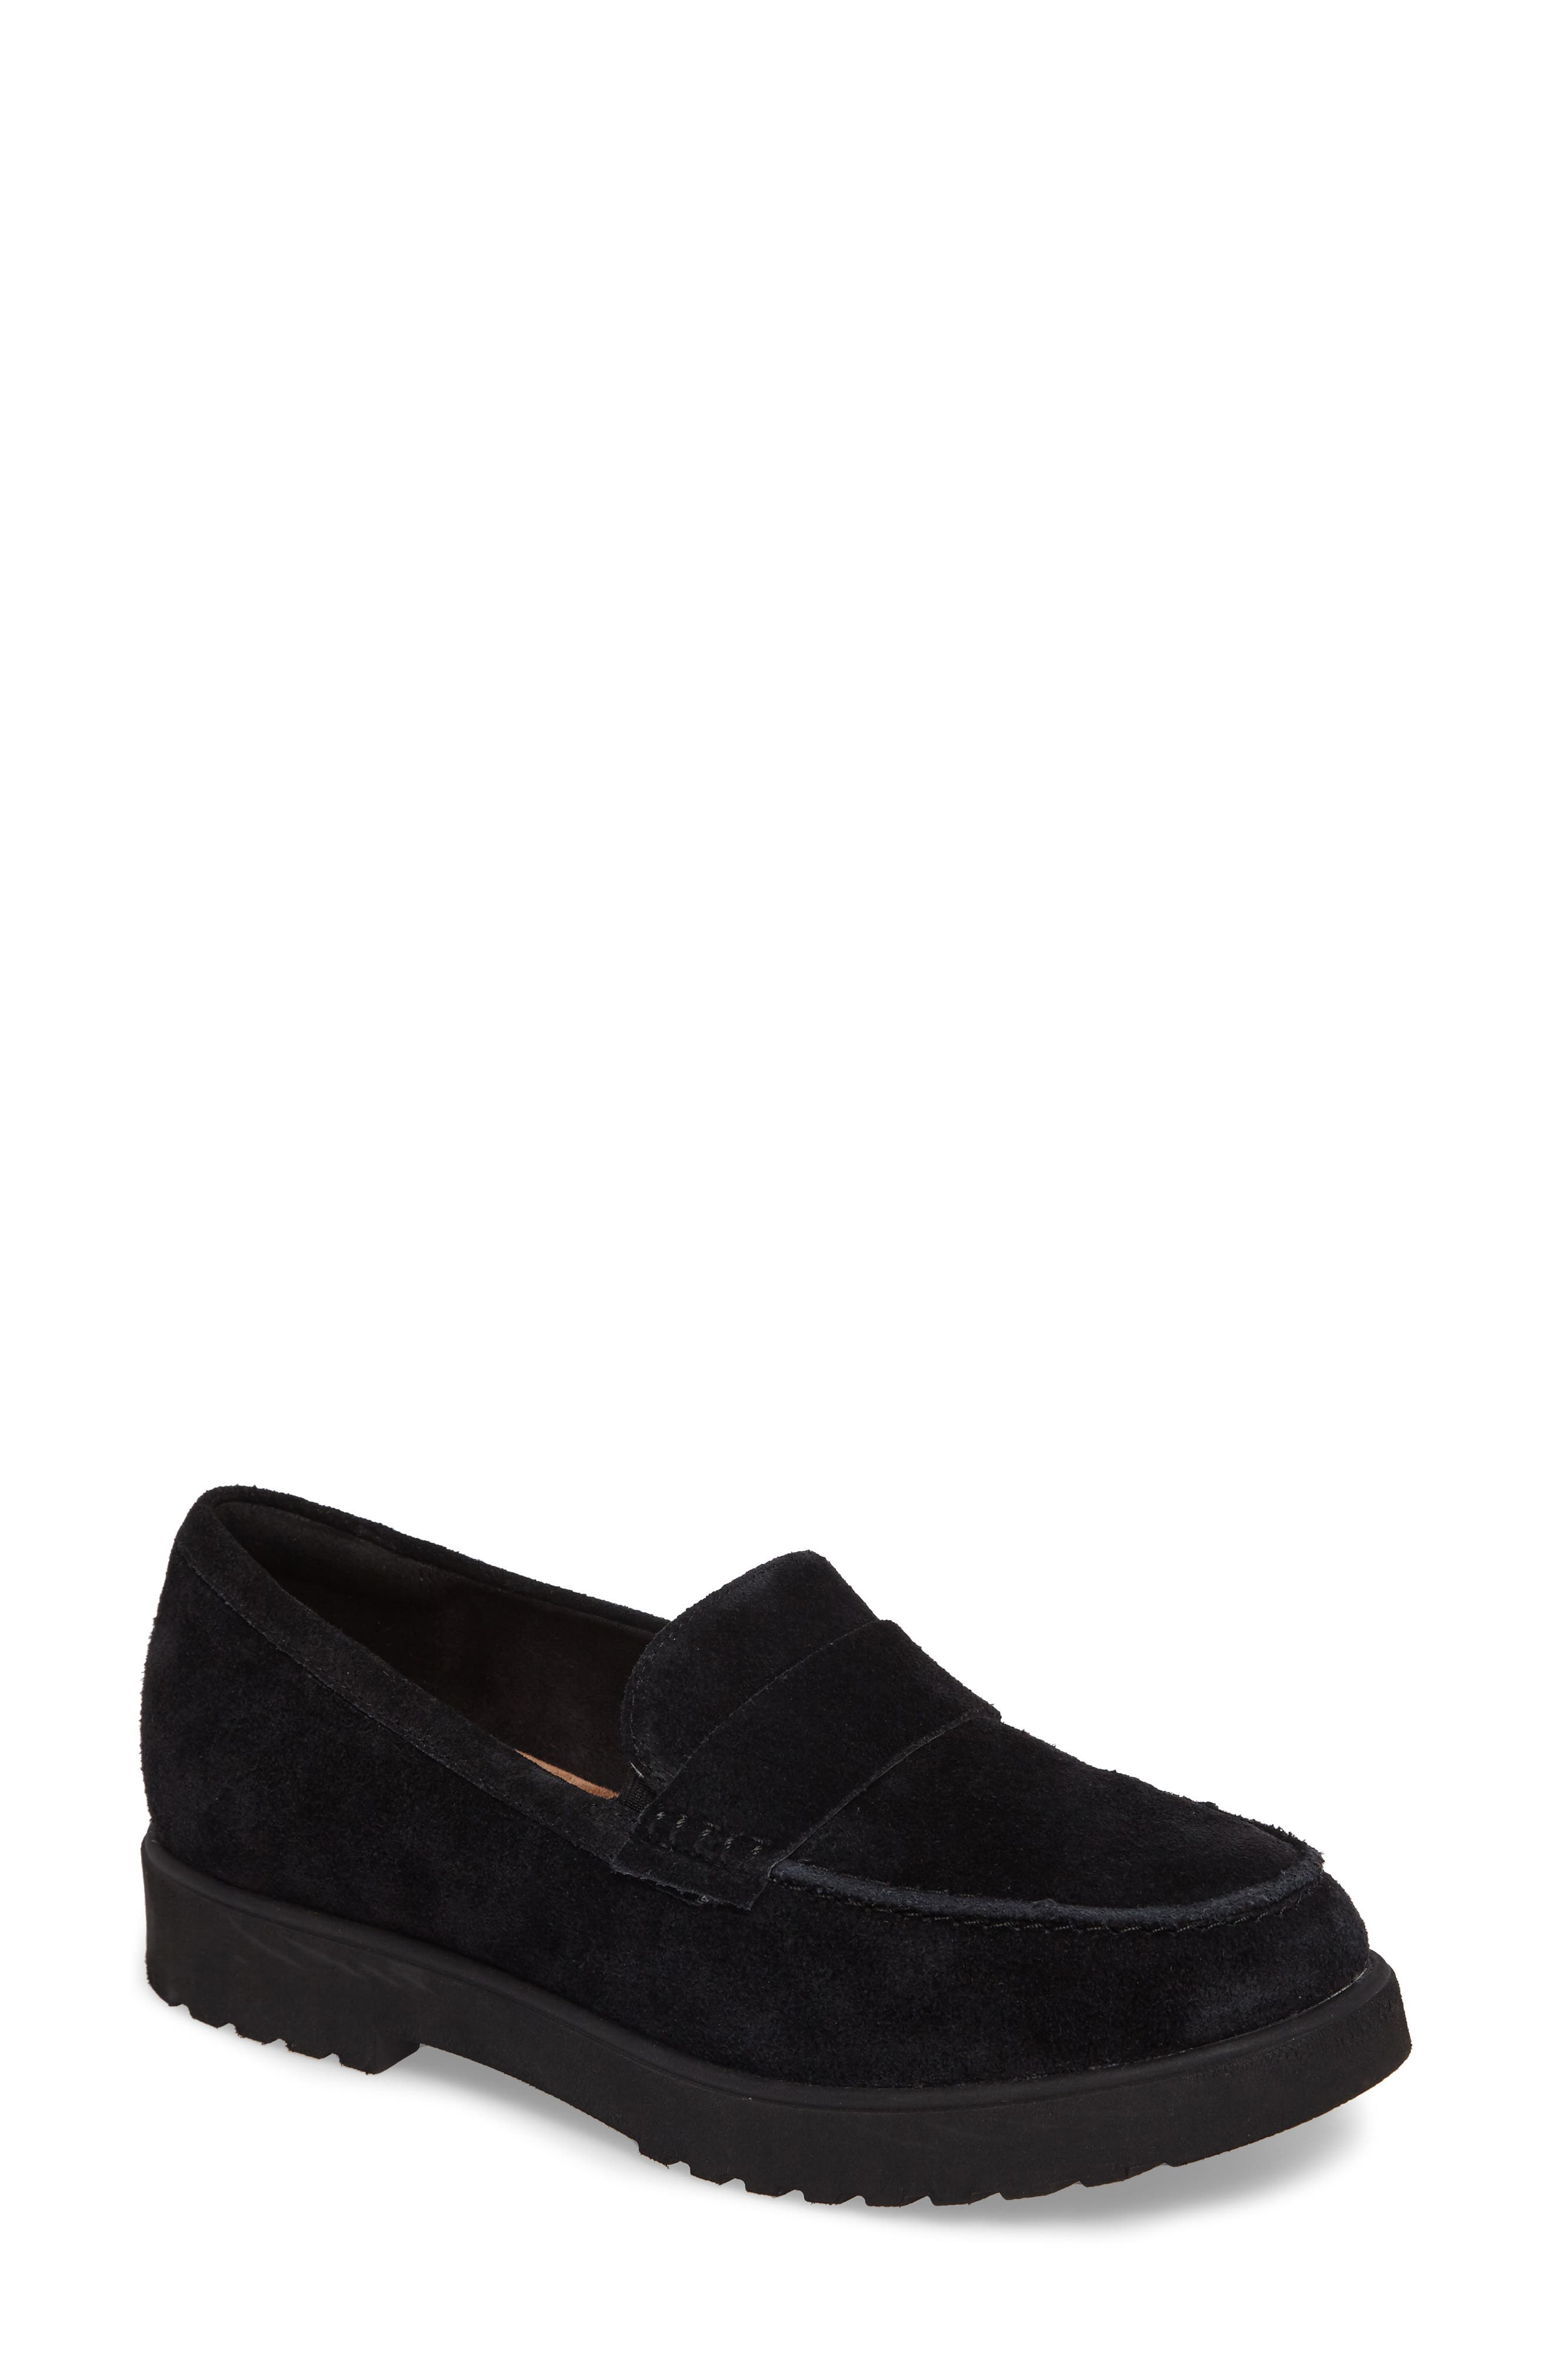 Bellevue Hazen Loafer,                         Main,                         color, 001